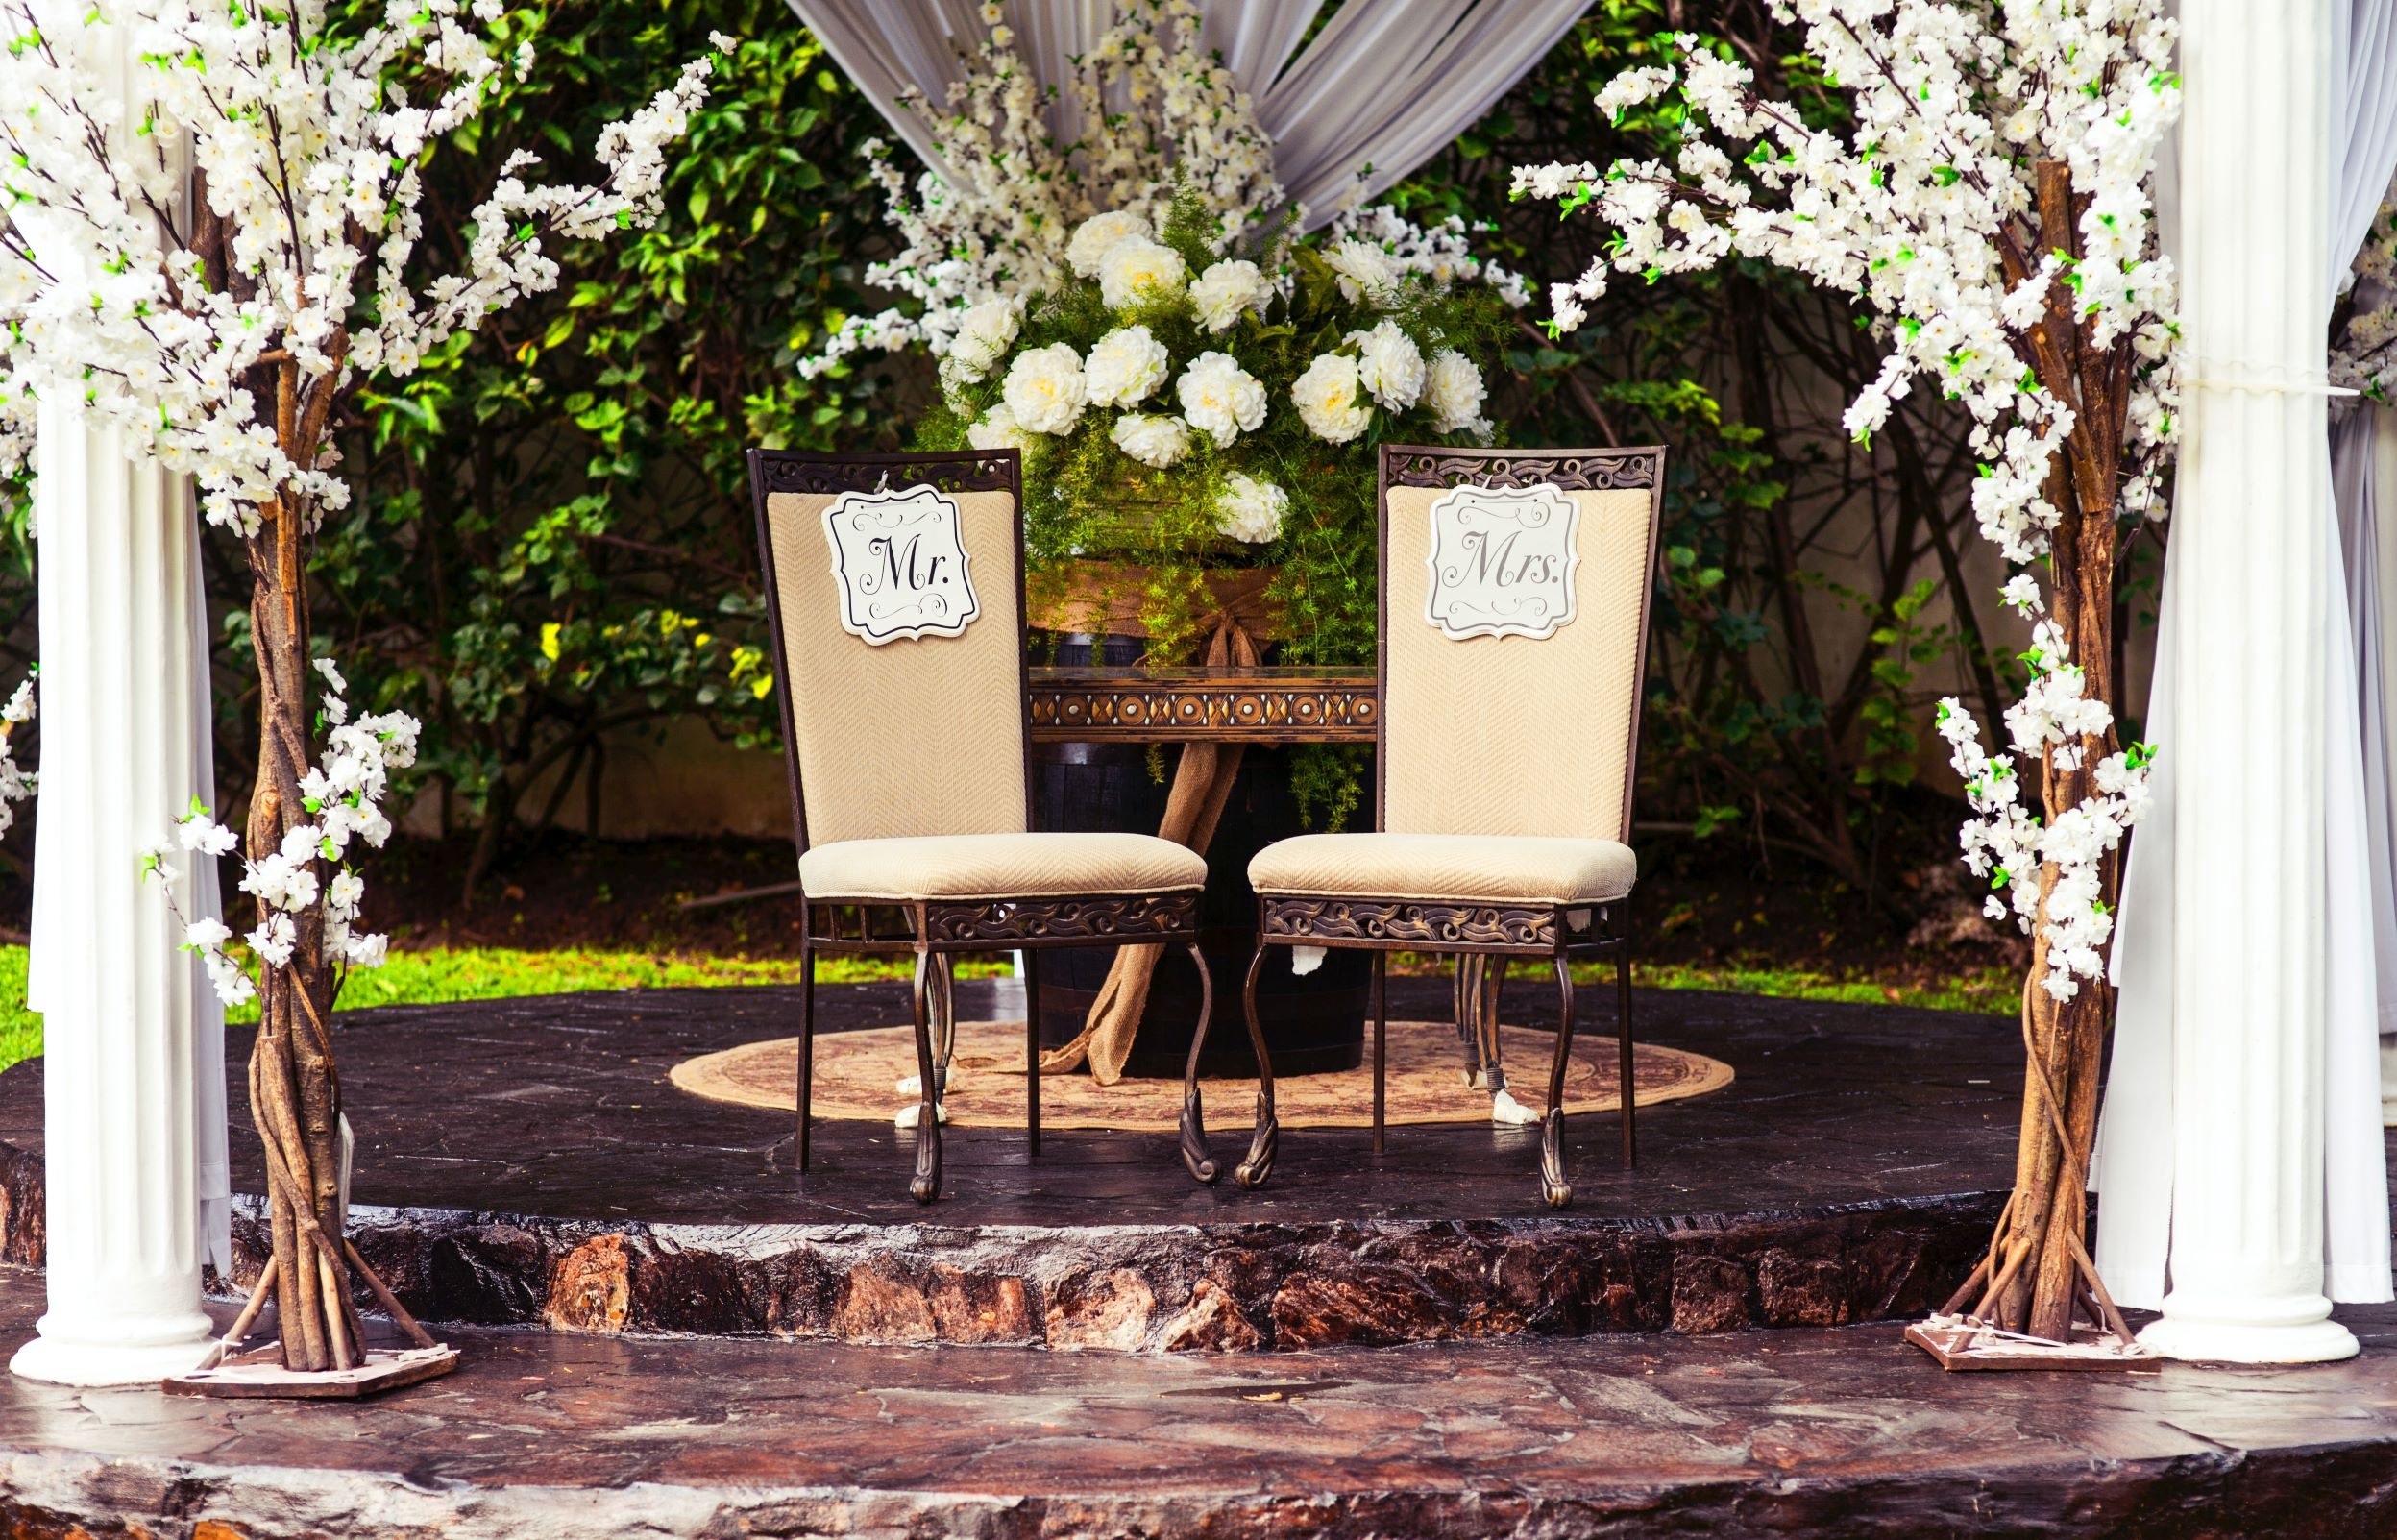 """Promising Signs: Image of two chairs under a wedding gazebo with """"Mr"""" and """"Mrs"""" signs on them. The Gazebo has white drapes and flowers"""